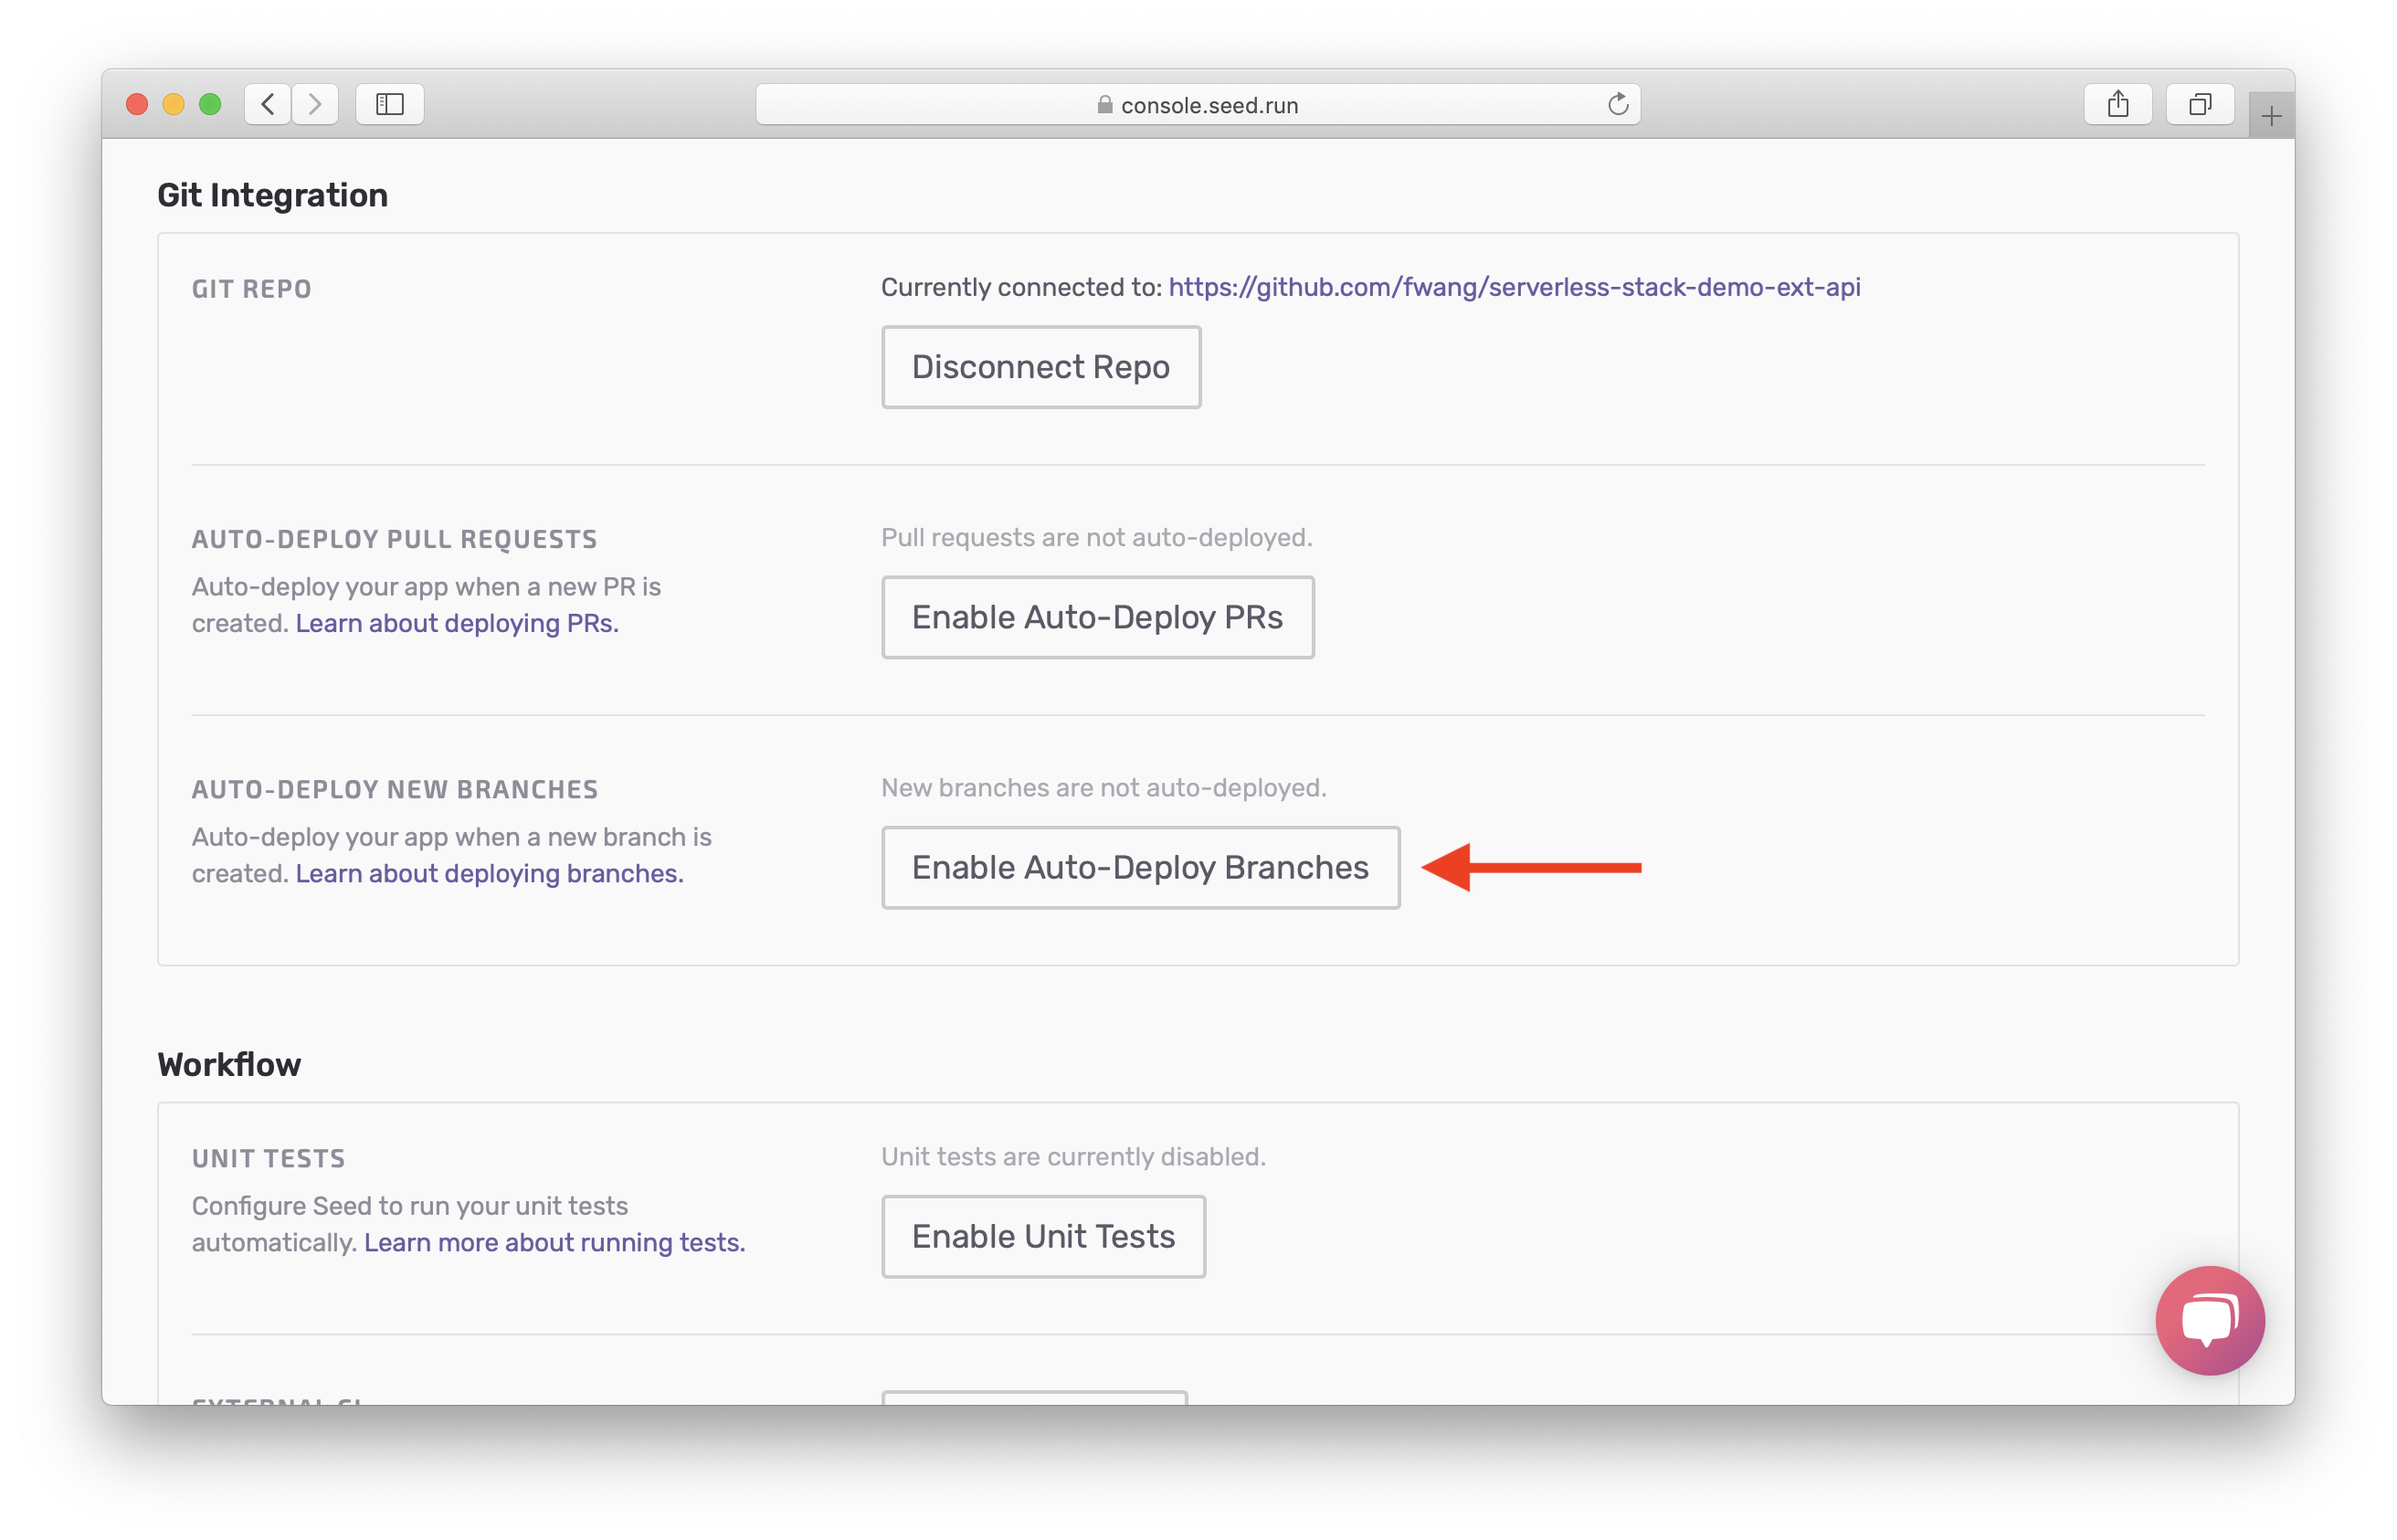 Select Enable Auto-Deploy Branches